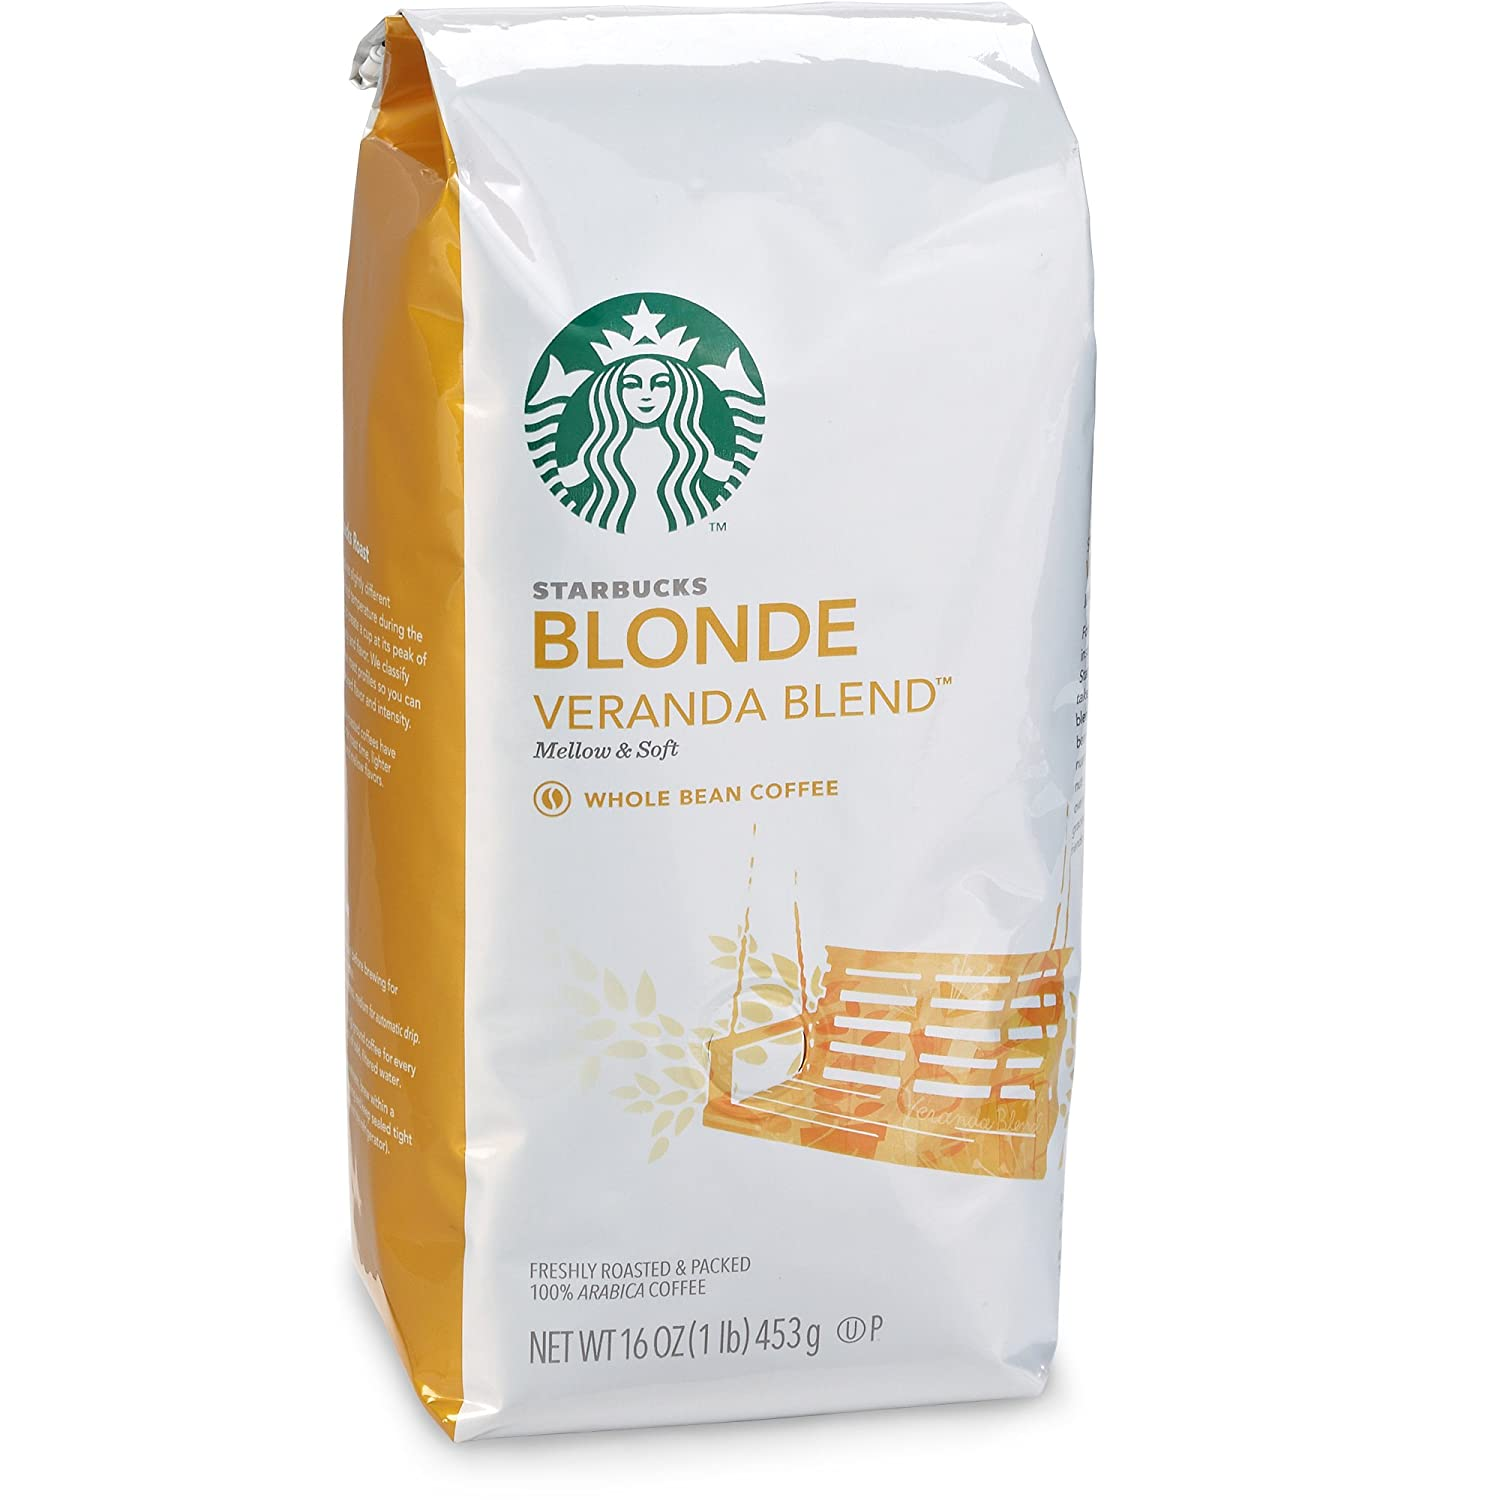 Starbucks Veranda Blend™ Whole Bean Coffee (1lb)